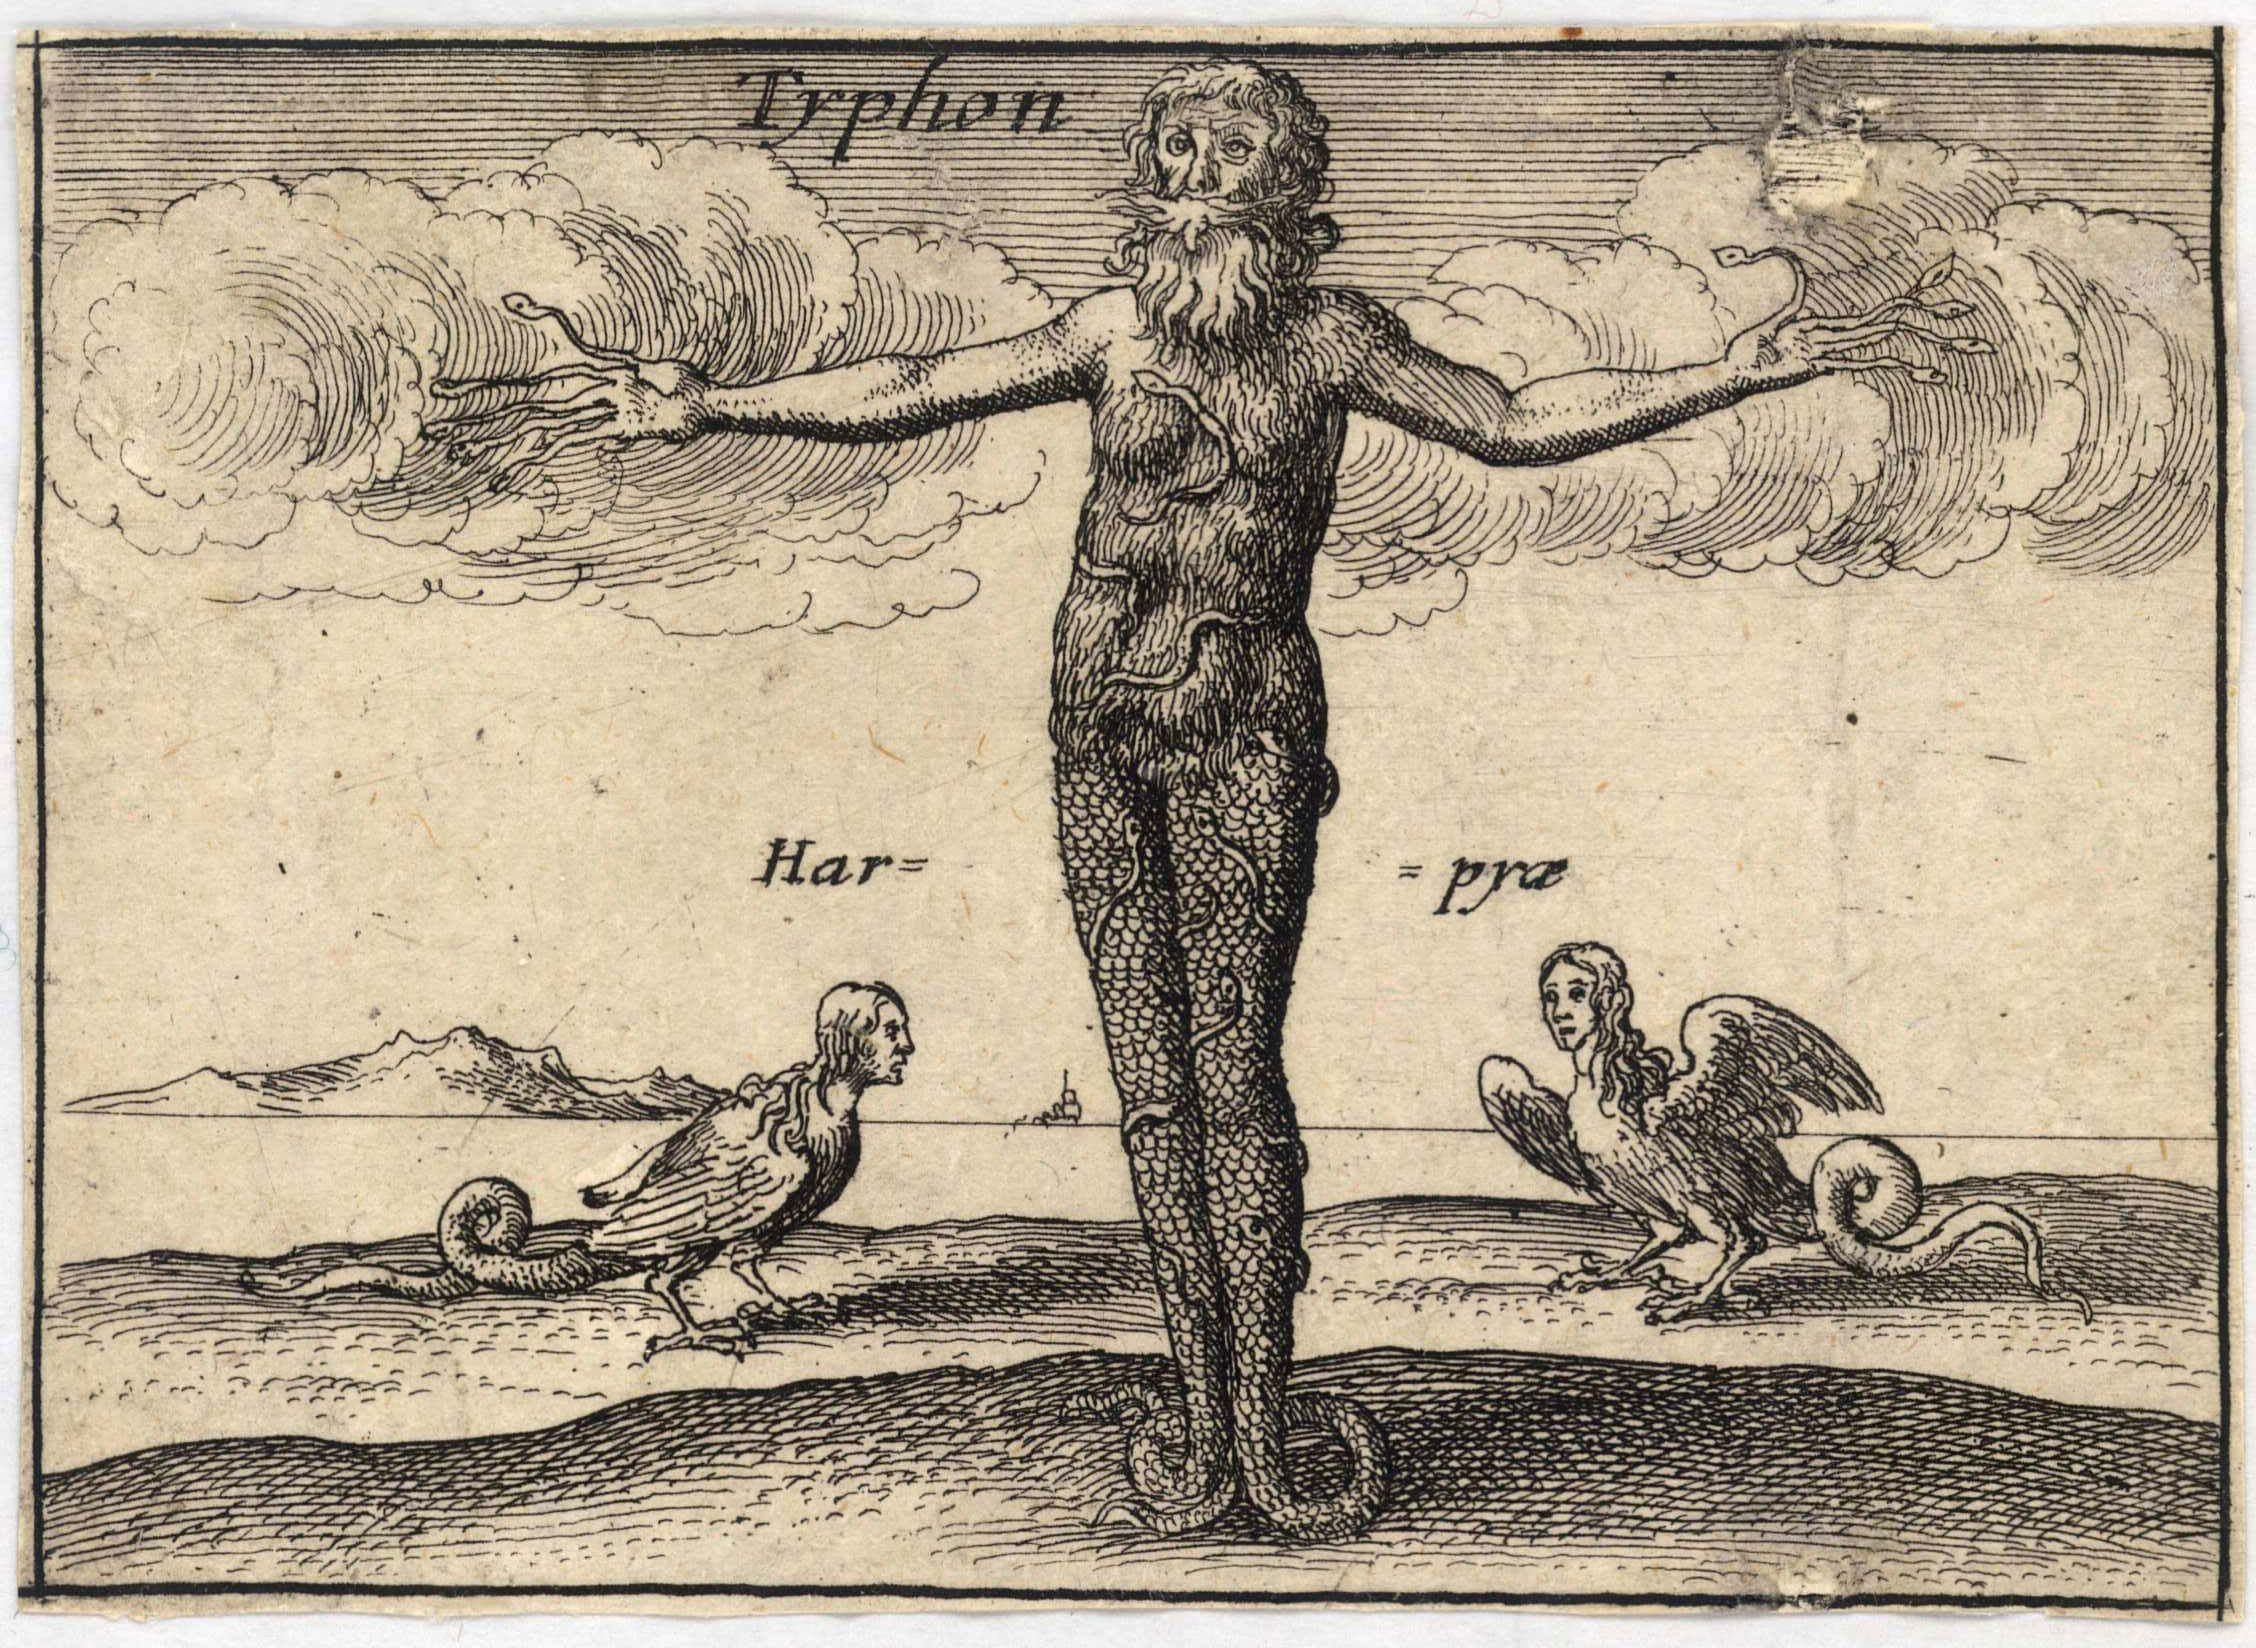 "Depiction ""Typhon"" from a series on "" The Greek Gods "" by the Bohemian etcher  Wenceslaus Hollar (Václav Hollar)  (1607–1677).  Born of  Mother Earth Gaia  and  Tartarus ,  Typhon  commands the destructive winds of the world, which he used on land to destroy crops and in water to sink ships and drown sailors. Several sources (e.g.,  Pindar ) locate Typhon's birth and dwelling place in the vicinity of the ancient Cilician coastal city of Corycus ( Kızkalesi, Turkey ). This is a region in which, according to  a recent climatology , tornadoes and waterspout are observed relatively frequently.    source:  artwork from  University of Toronto Wenceslaus Hollar Digital Collection  scanned by  University of Toronto , high resolution version extracted using custom tool  by User:Dcoetzee via Wikipedia ."